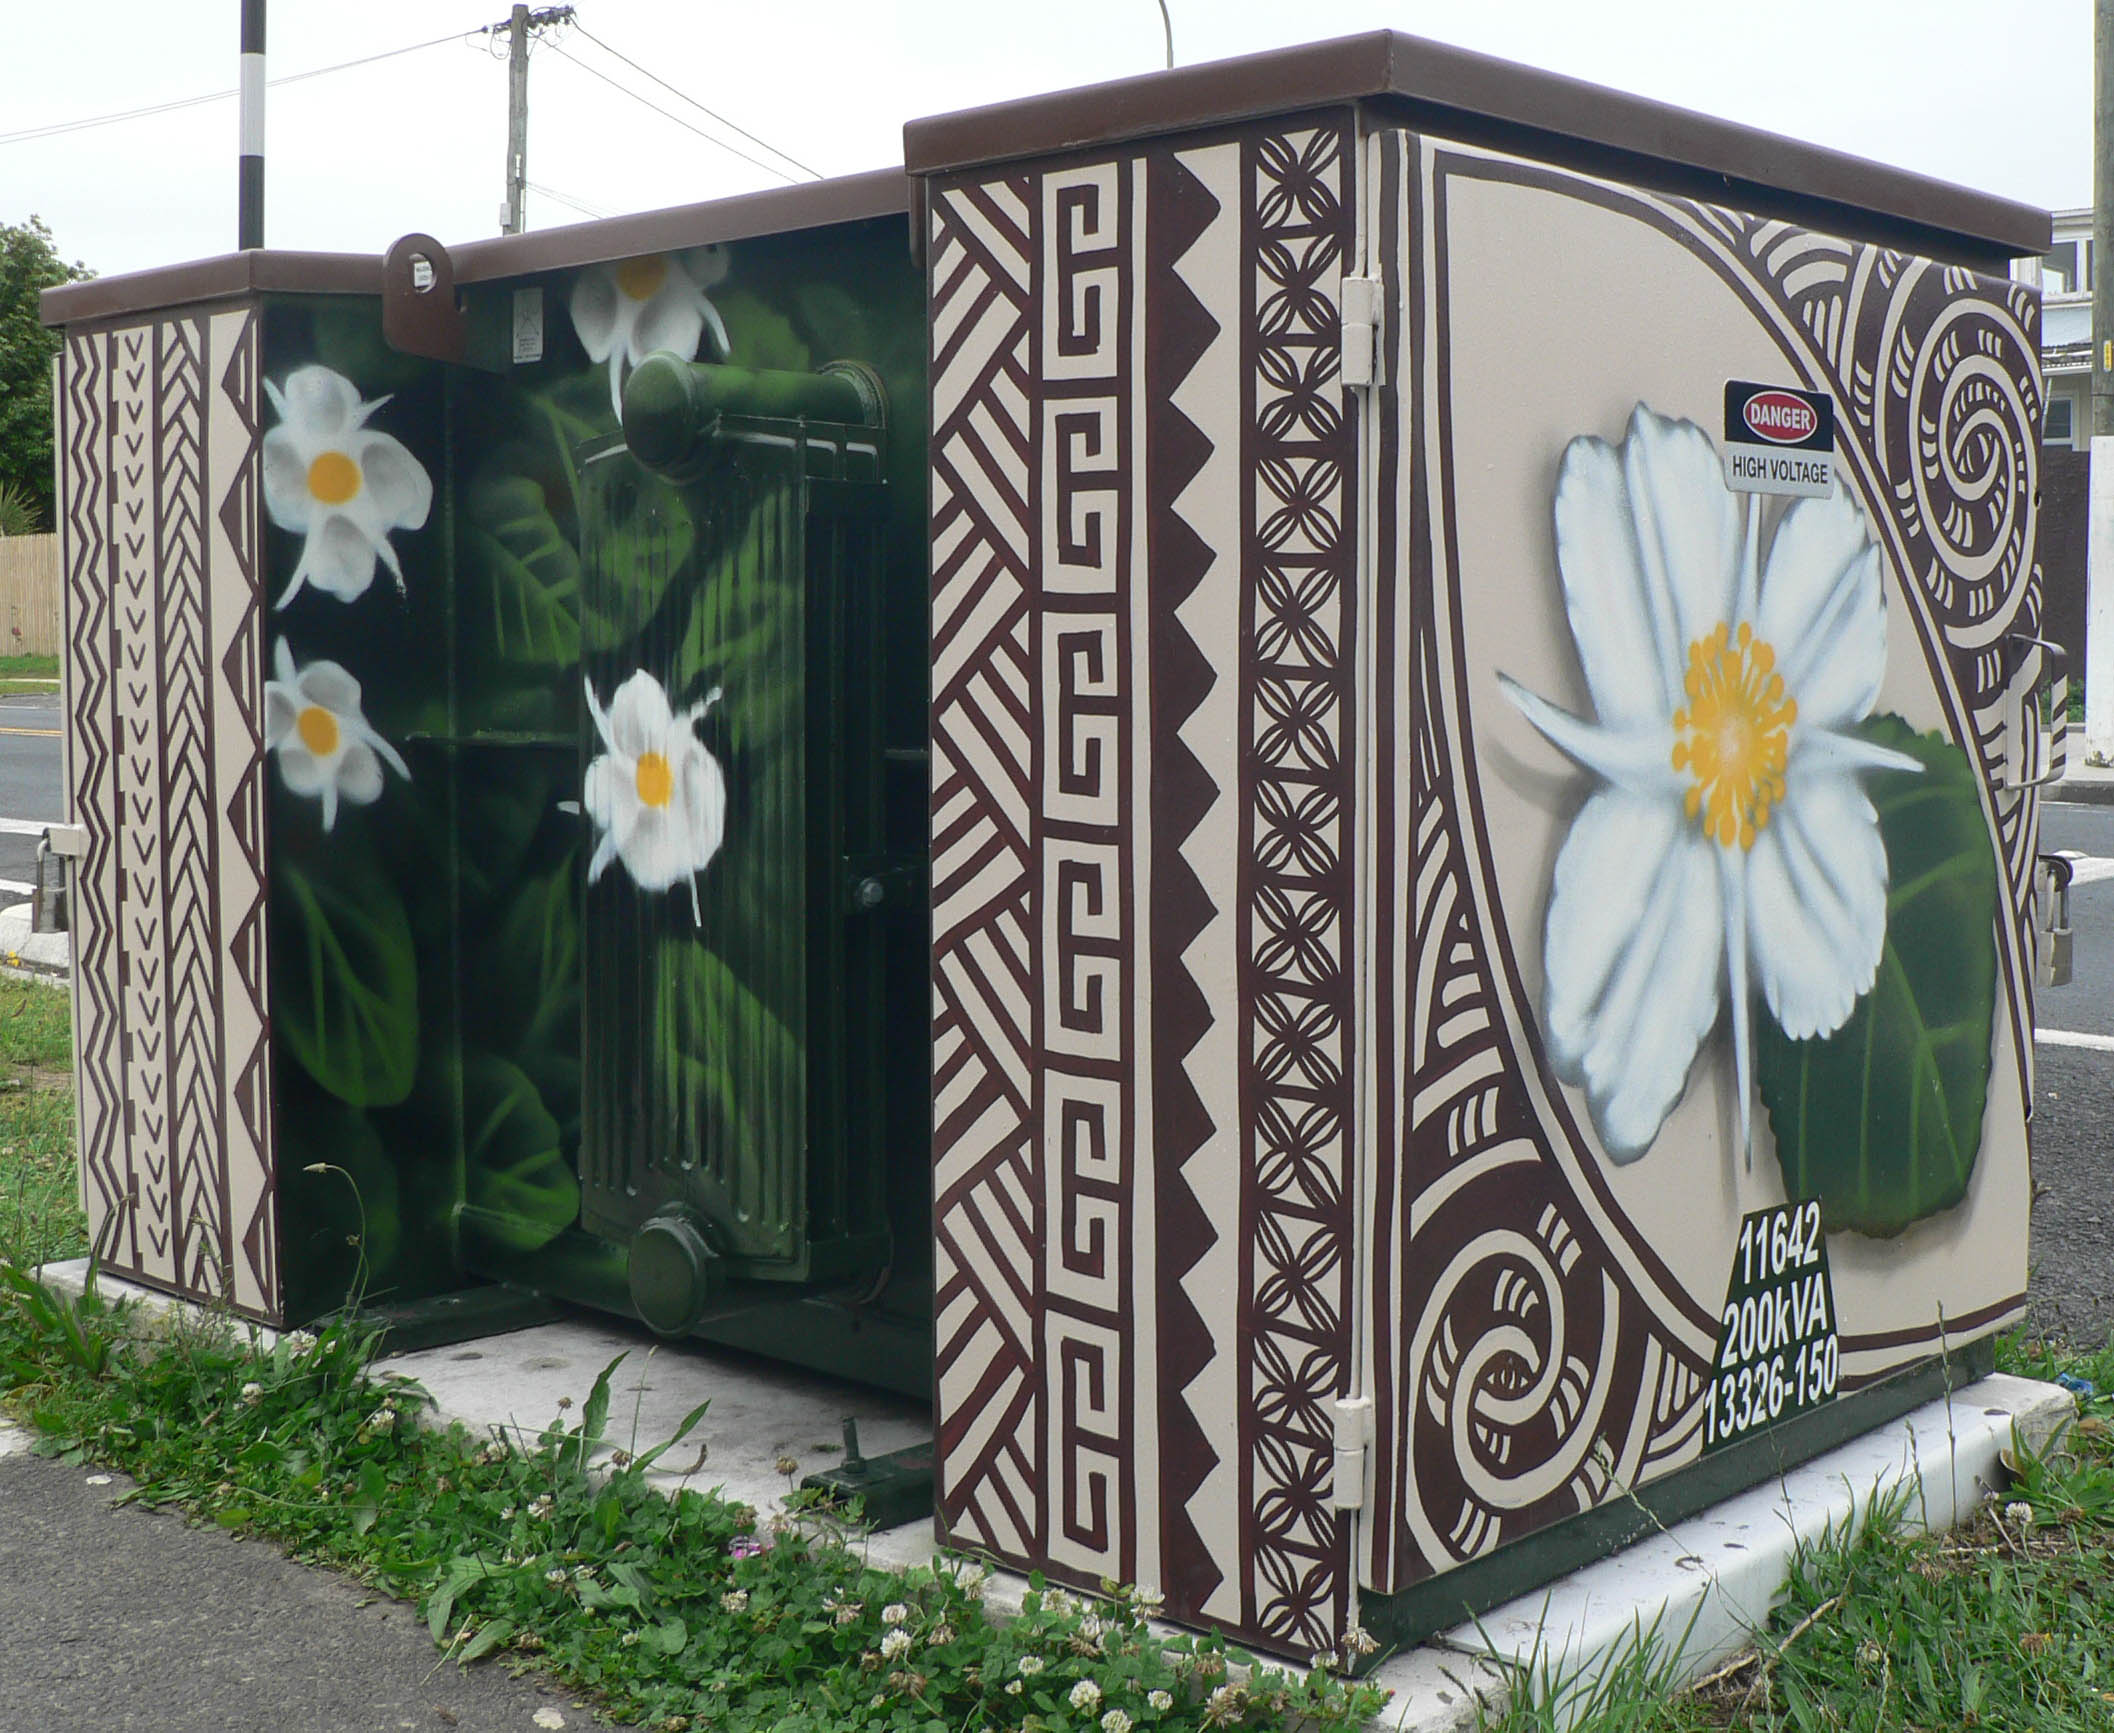 Auckland utility box art